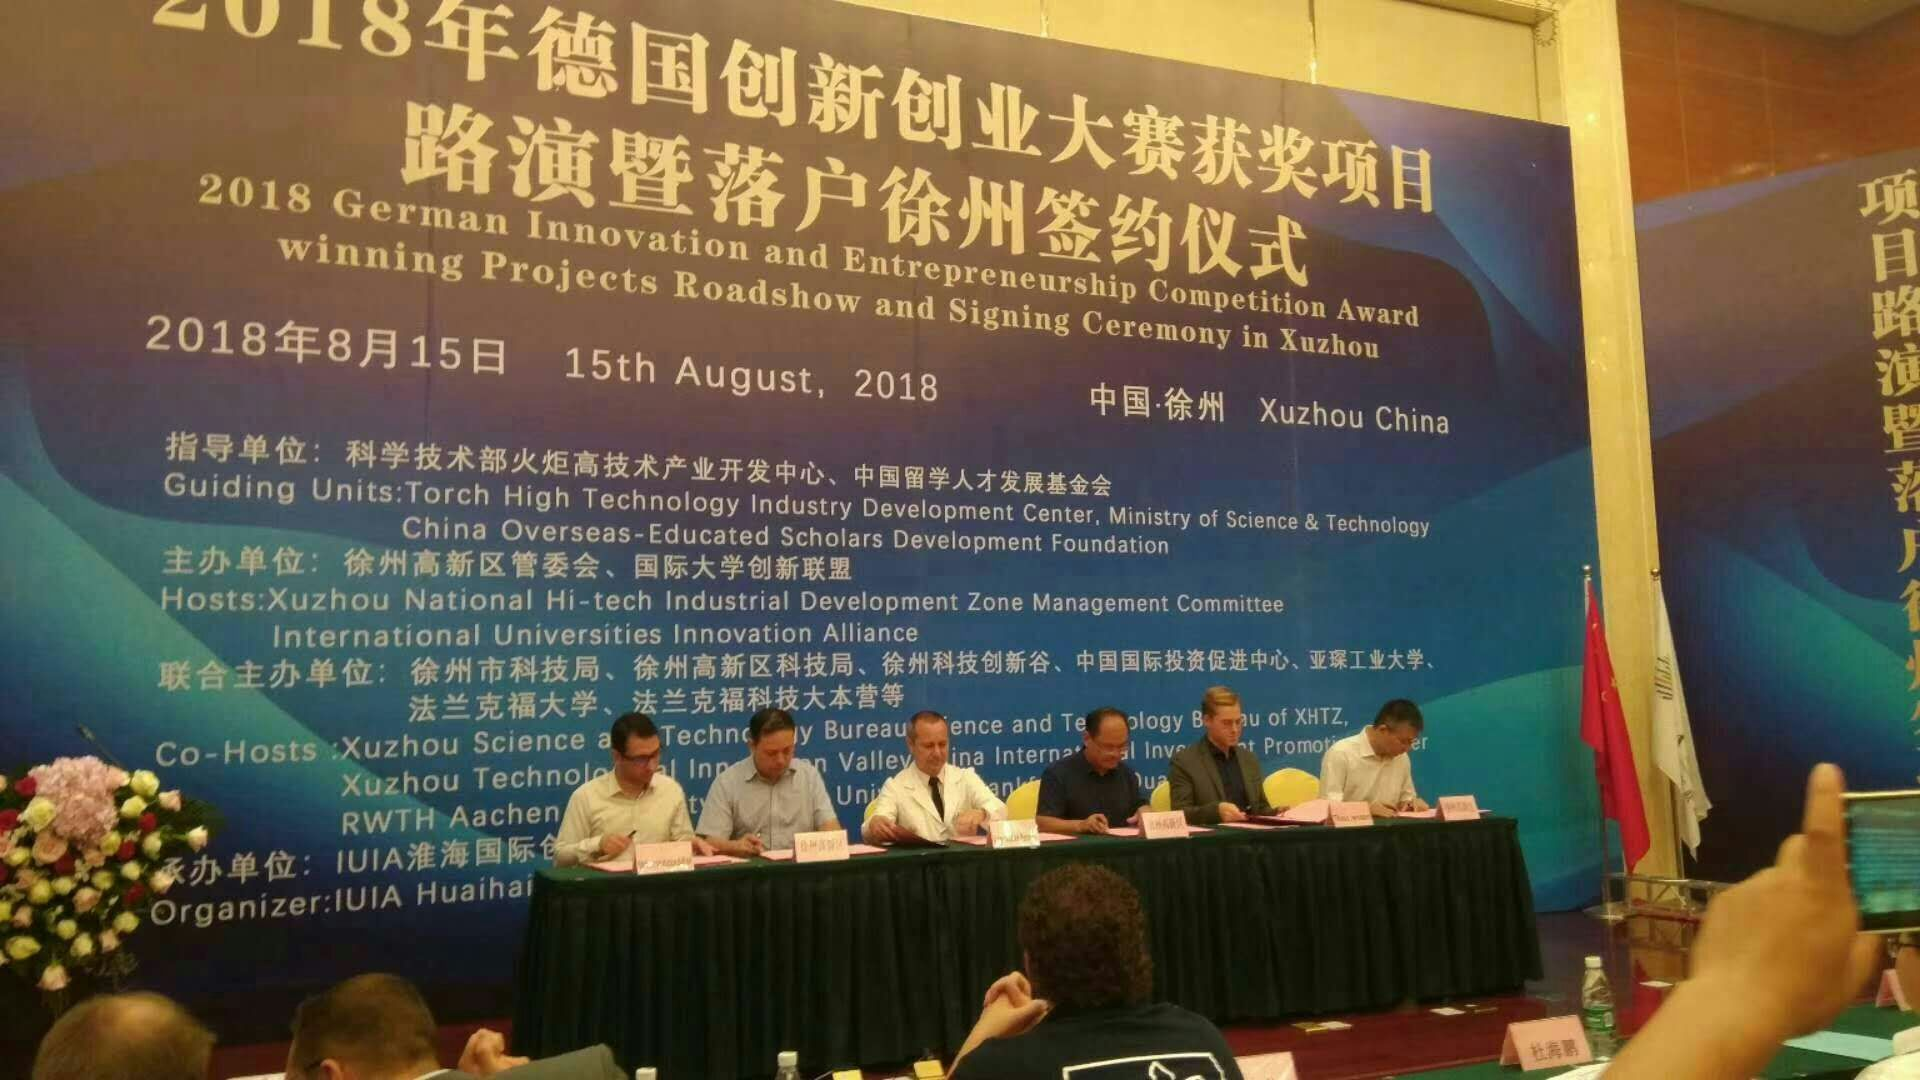 Partnership with XUZHOU Science and Technology Industrial Park